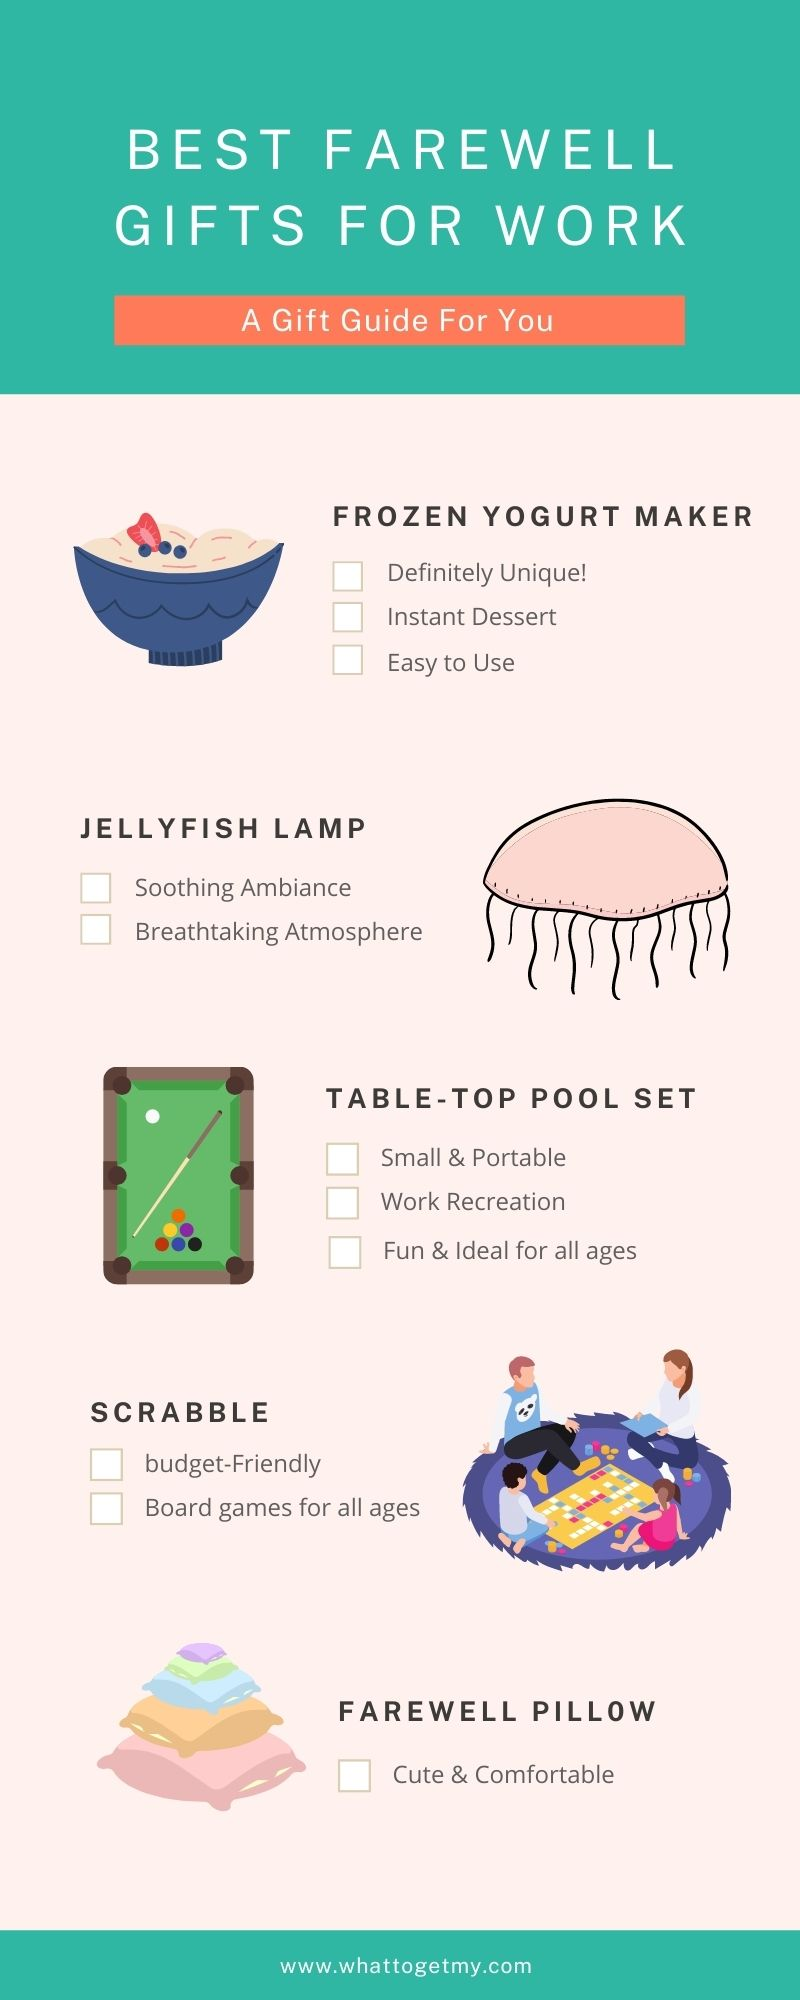 Infographic Farewell gifts